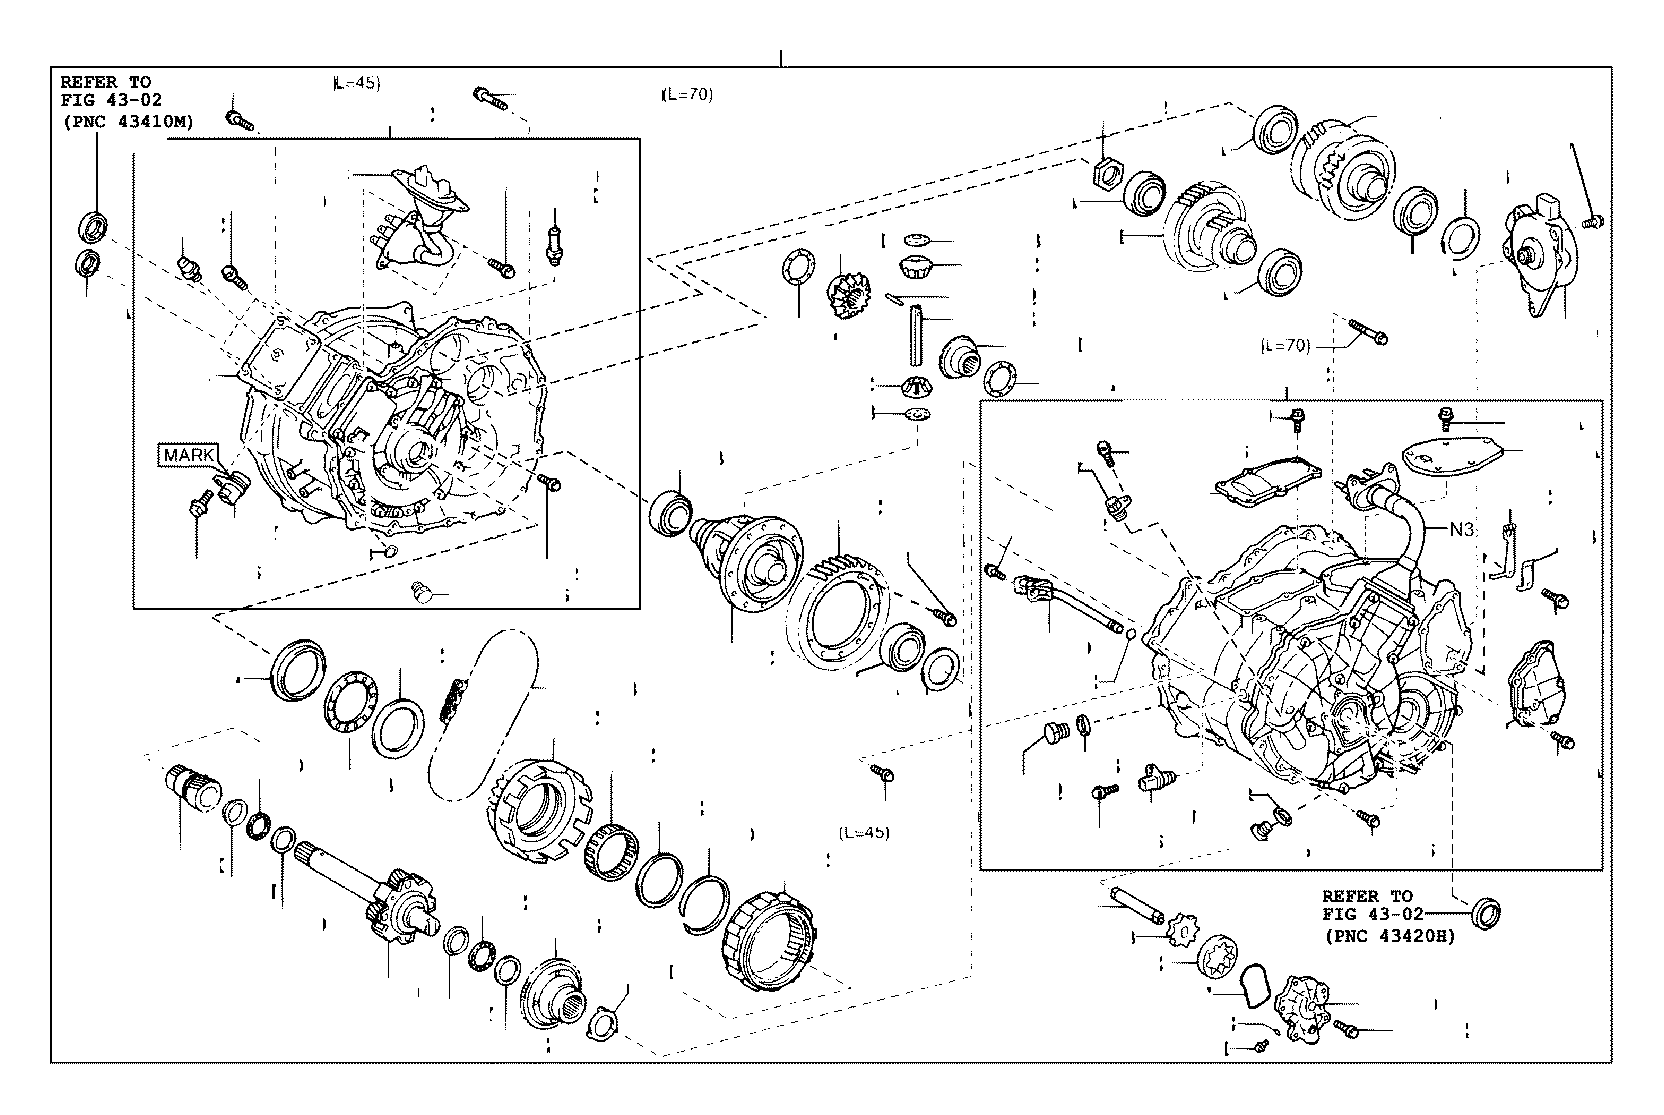 Toyota Prius Generator assembly, hybrid vehicle